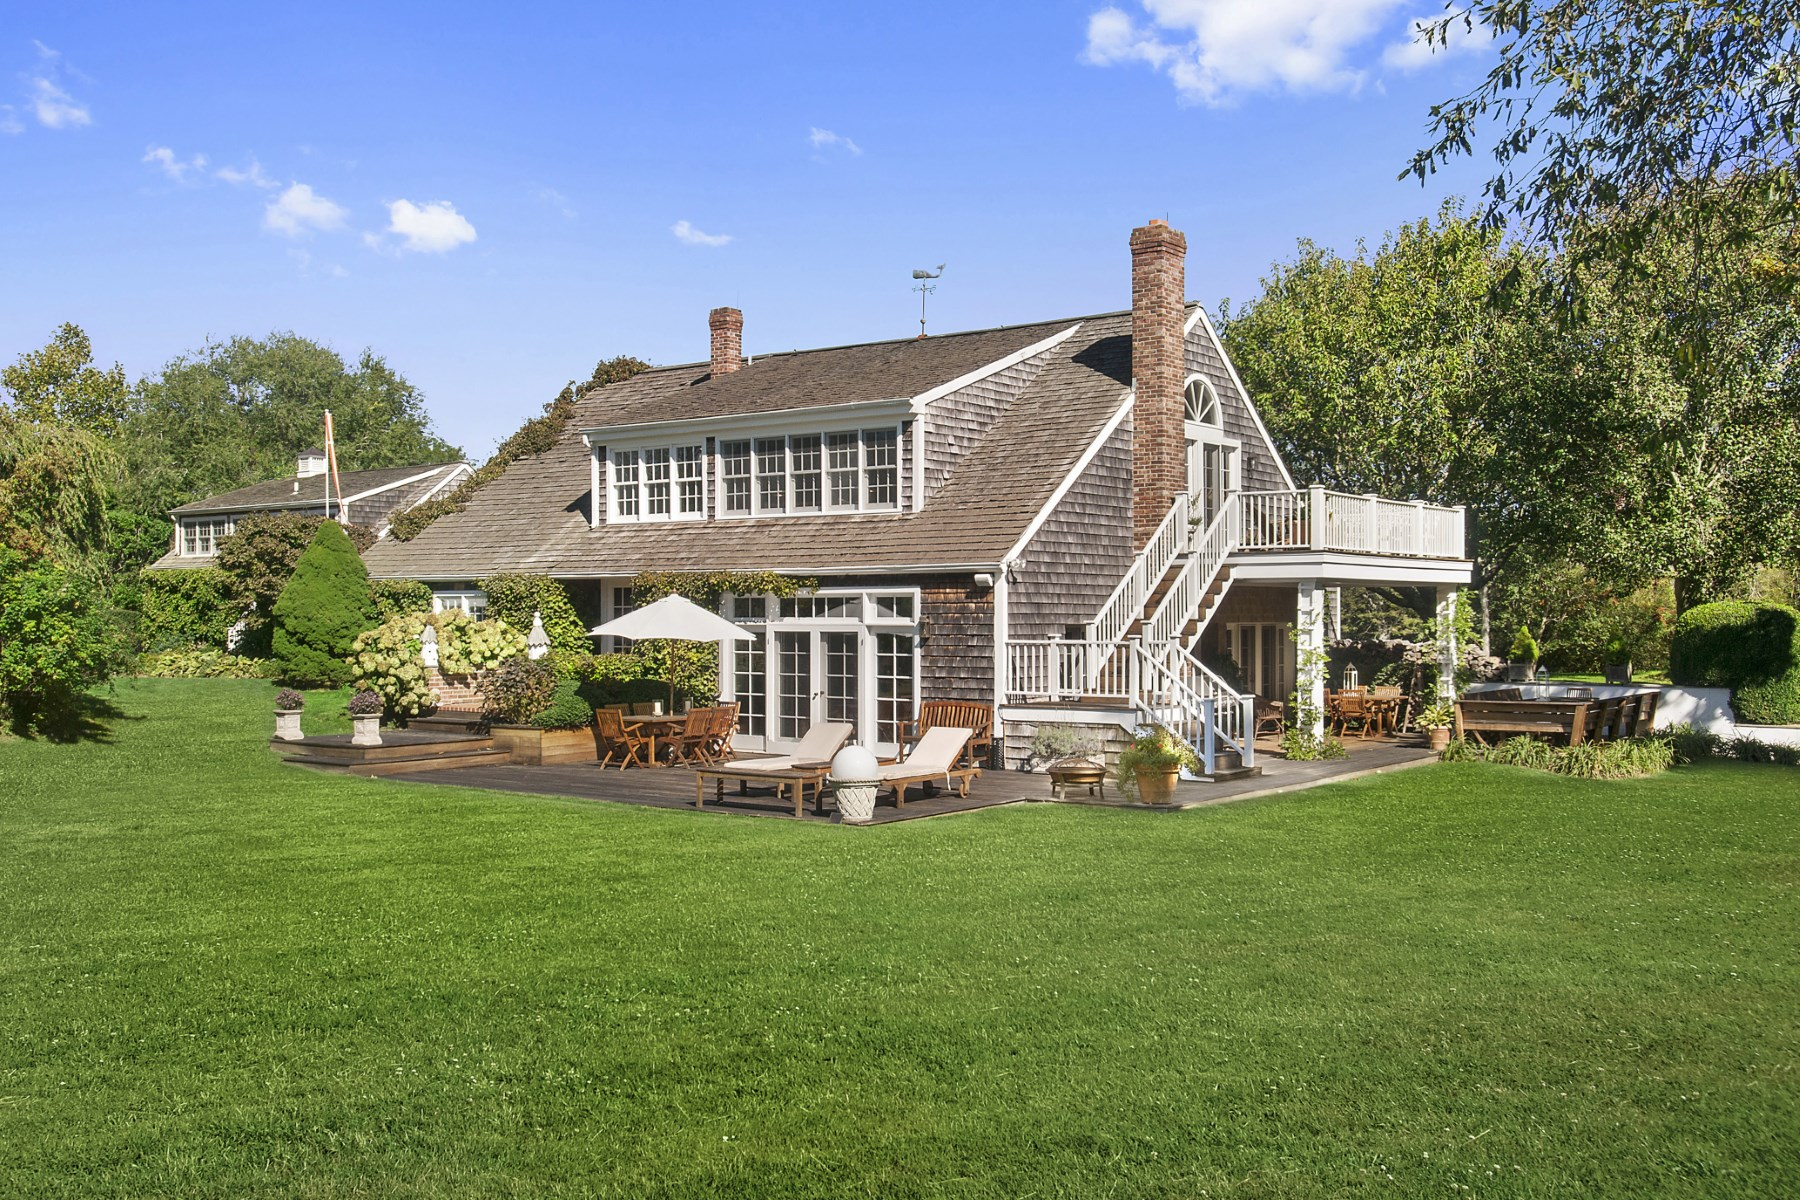 Single Family Home for Rent at Sagaponack South 16 Old Barn Lane Sagaponack, New York 11962 United States